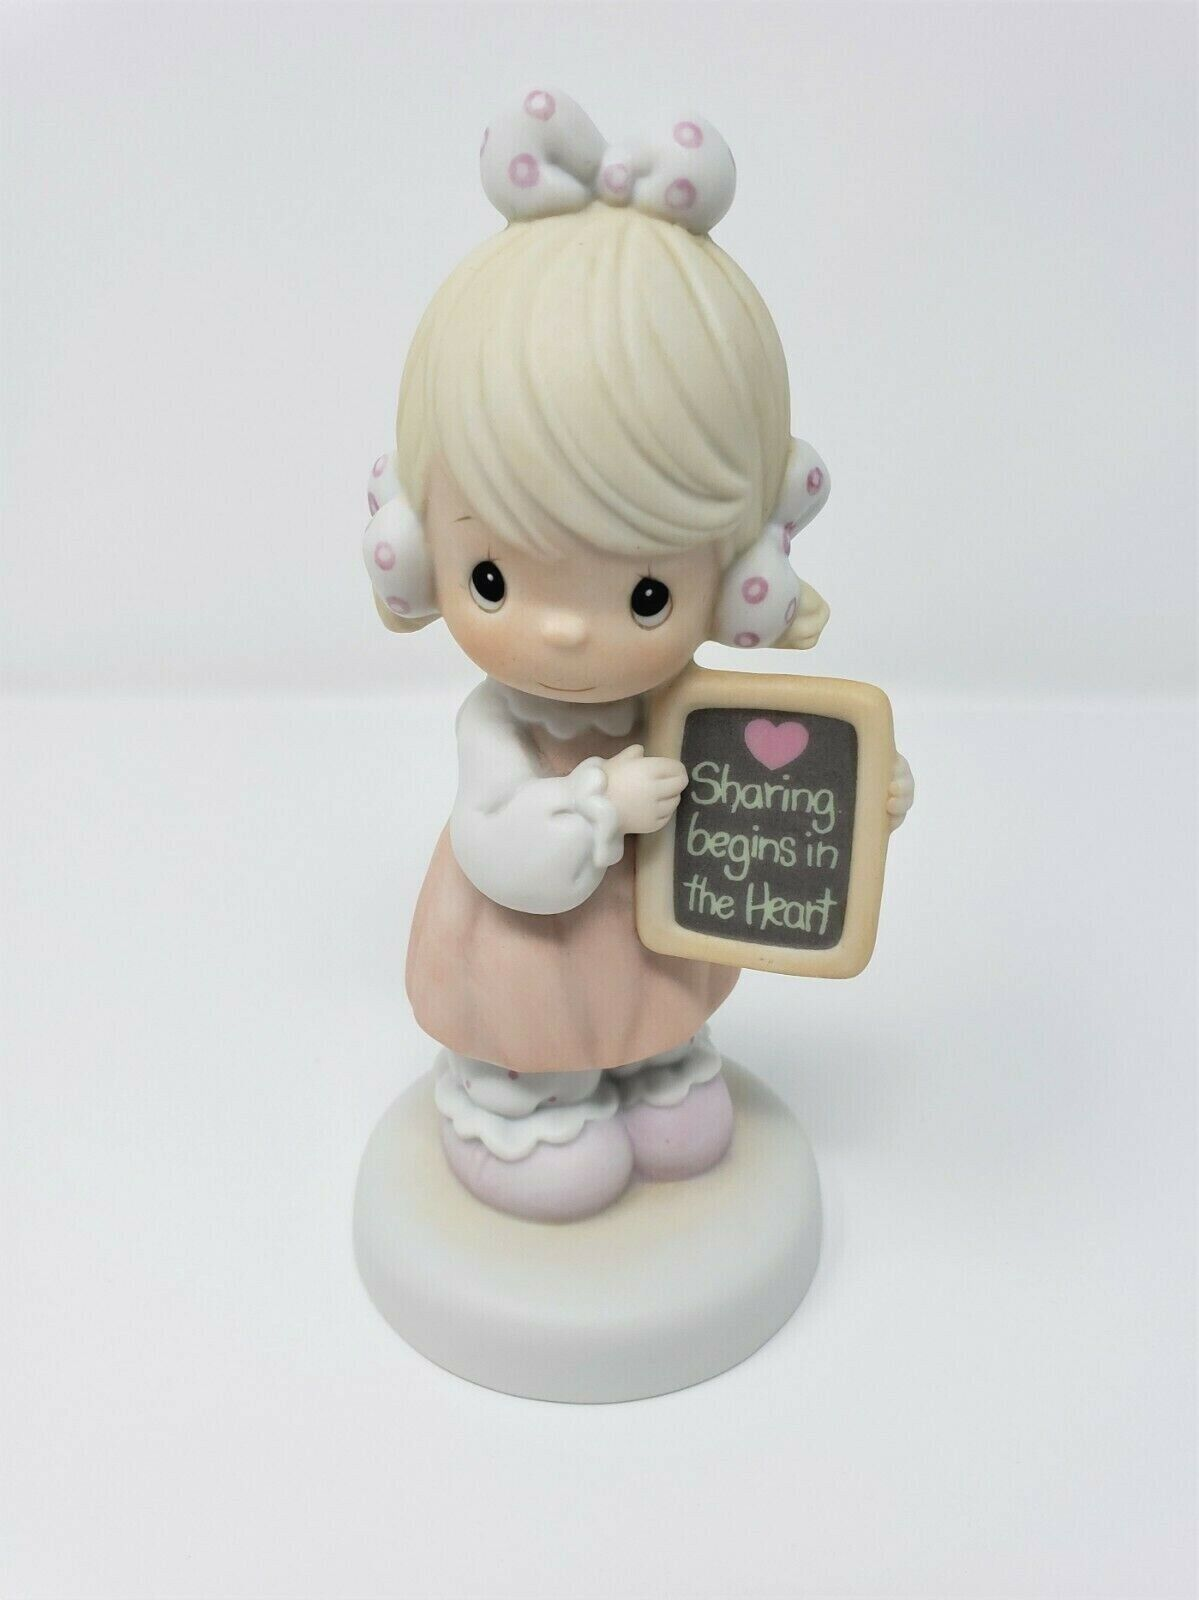 Precious Moments Sharing Begins In The Heart 520861 Special Event Figurine 1988